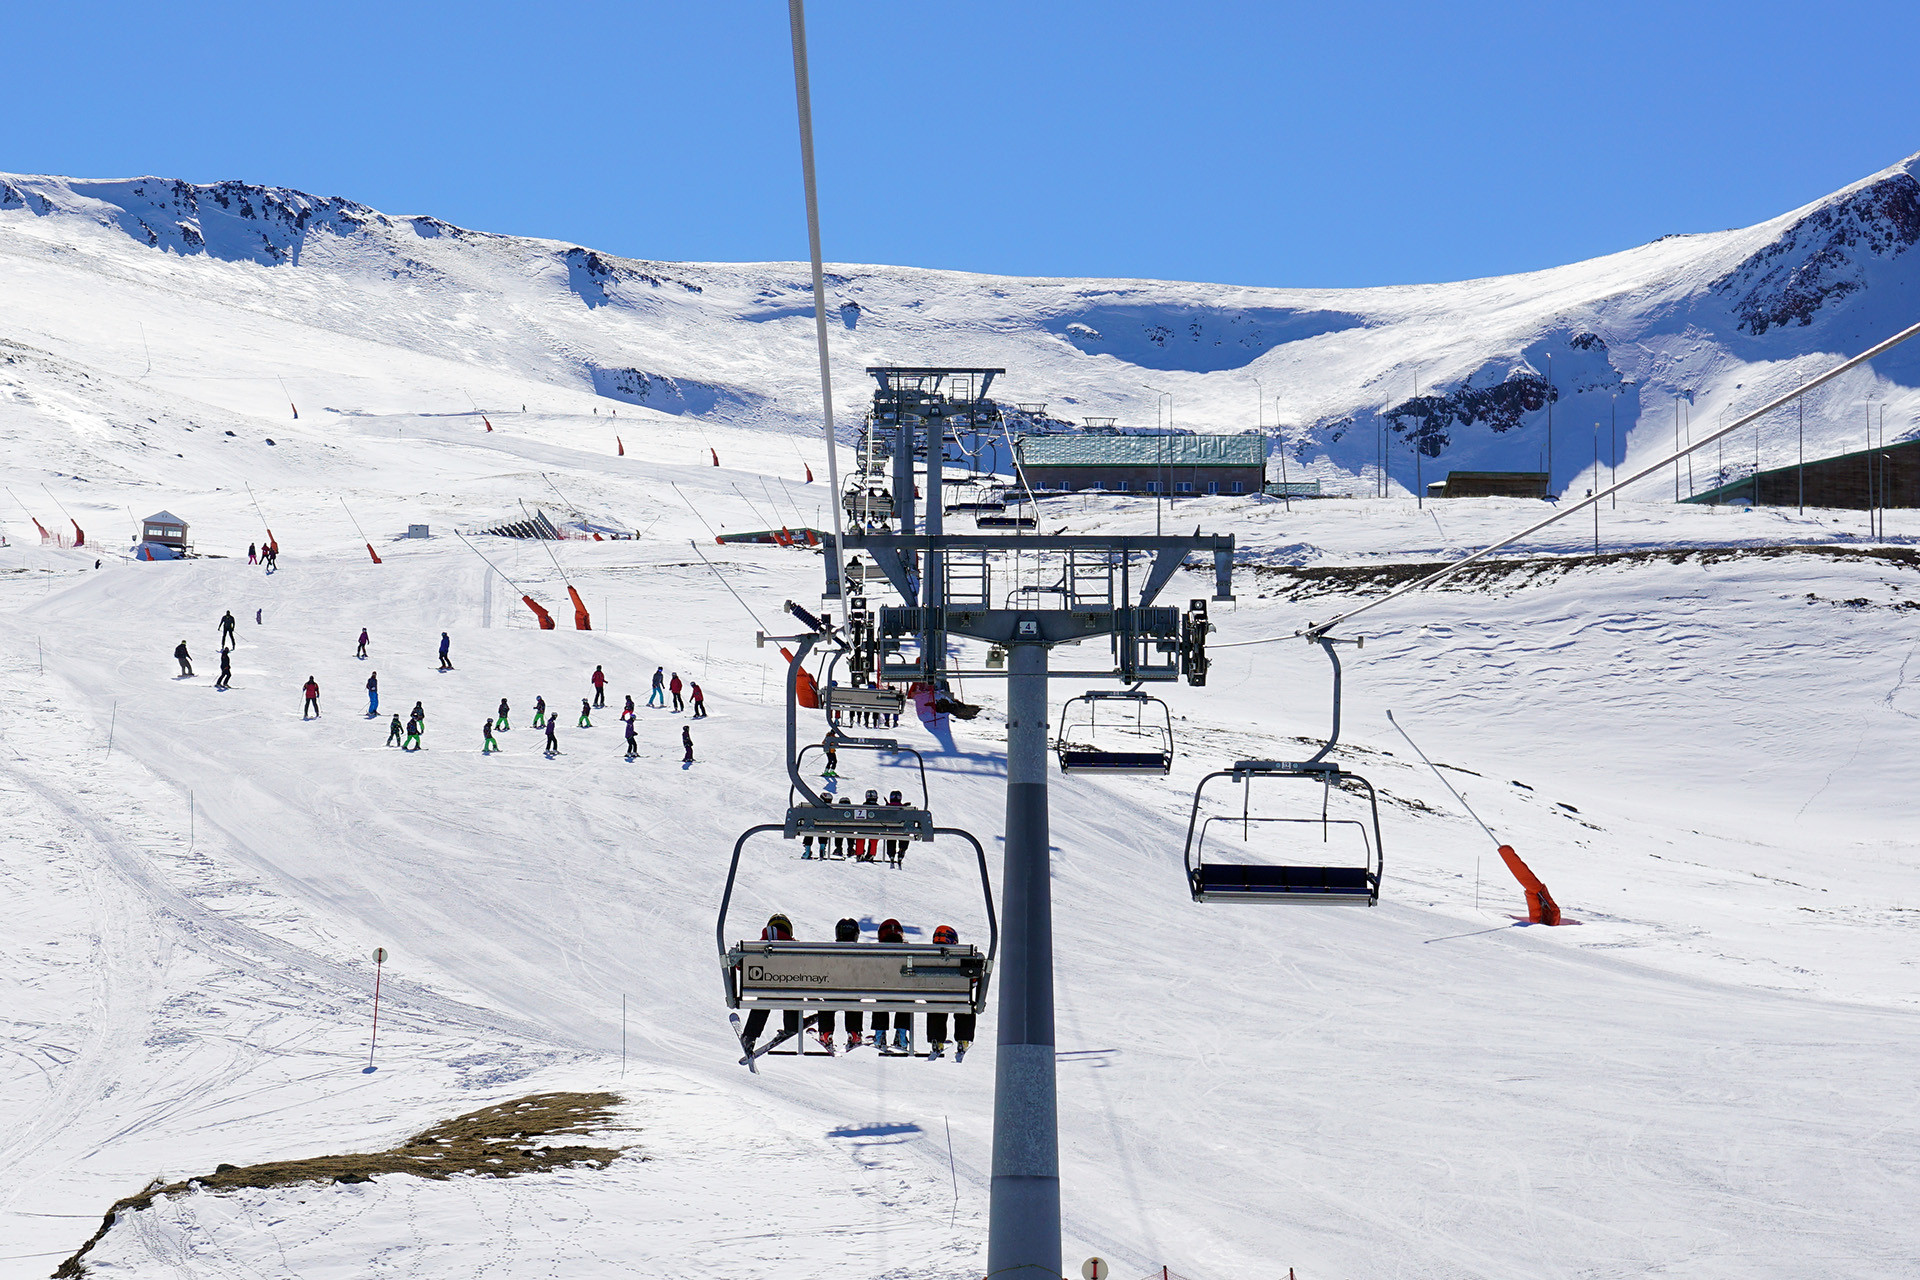 Erzurum in Turkey have been eliminated from the campaign to host the 2026 Winter Olympic and Paralympic Games and urged to gain more experience of hosting major events ©Getty Images